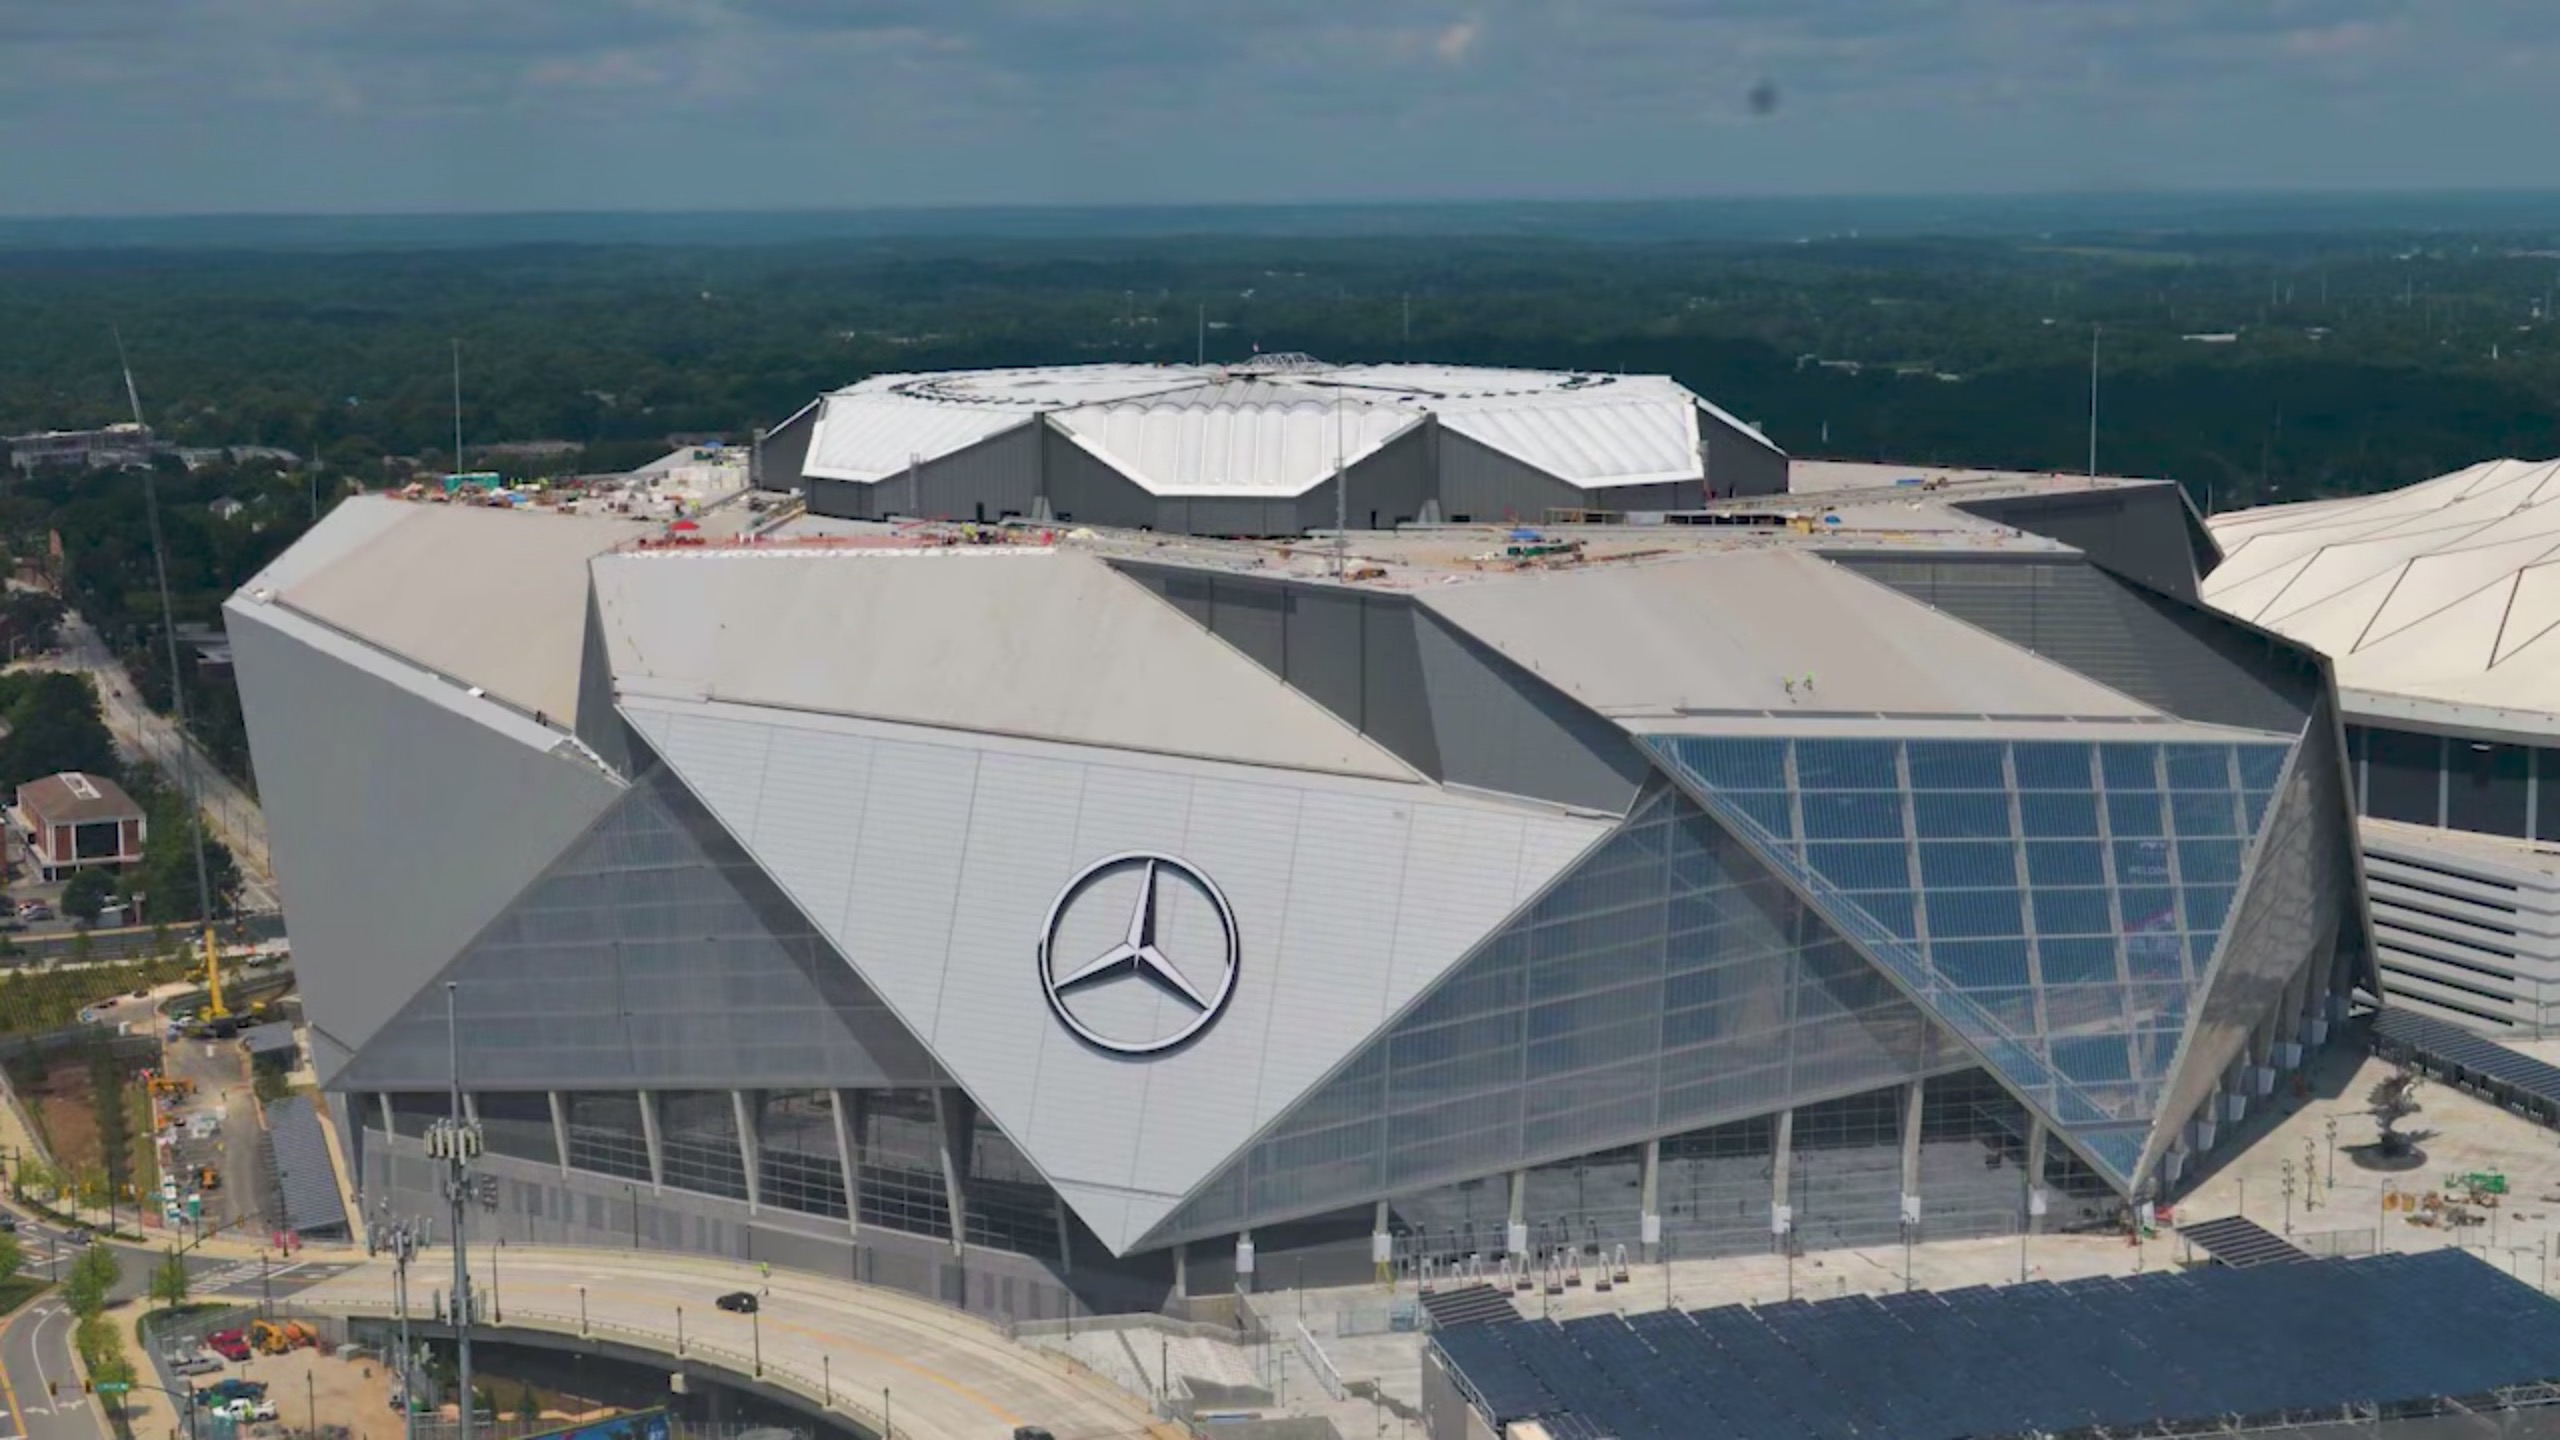 Manitowoc Cranes Built One Of The Coolest NFL Stadiums Ever